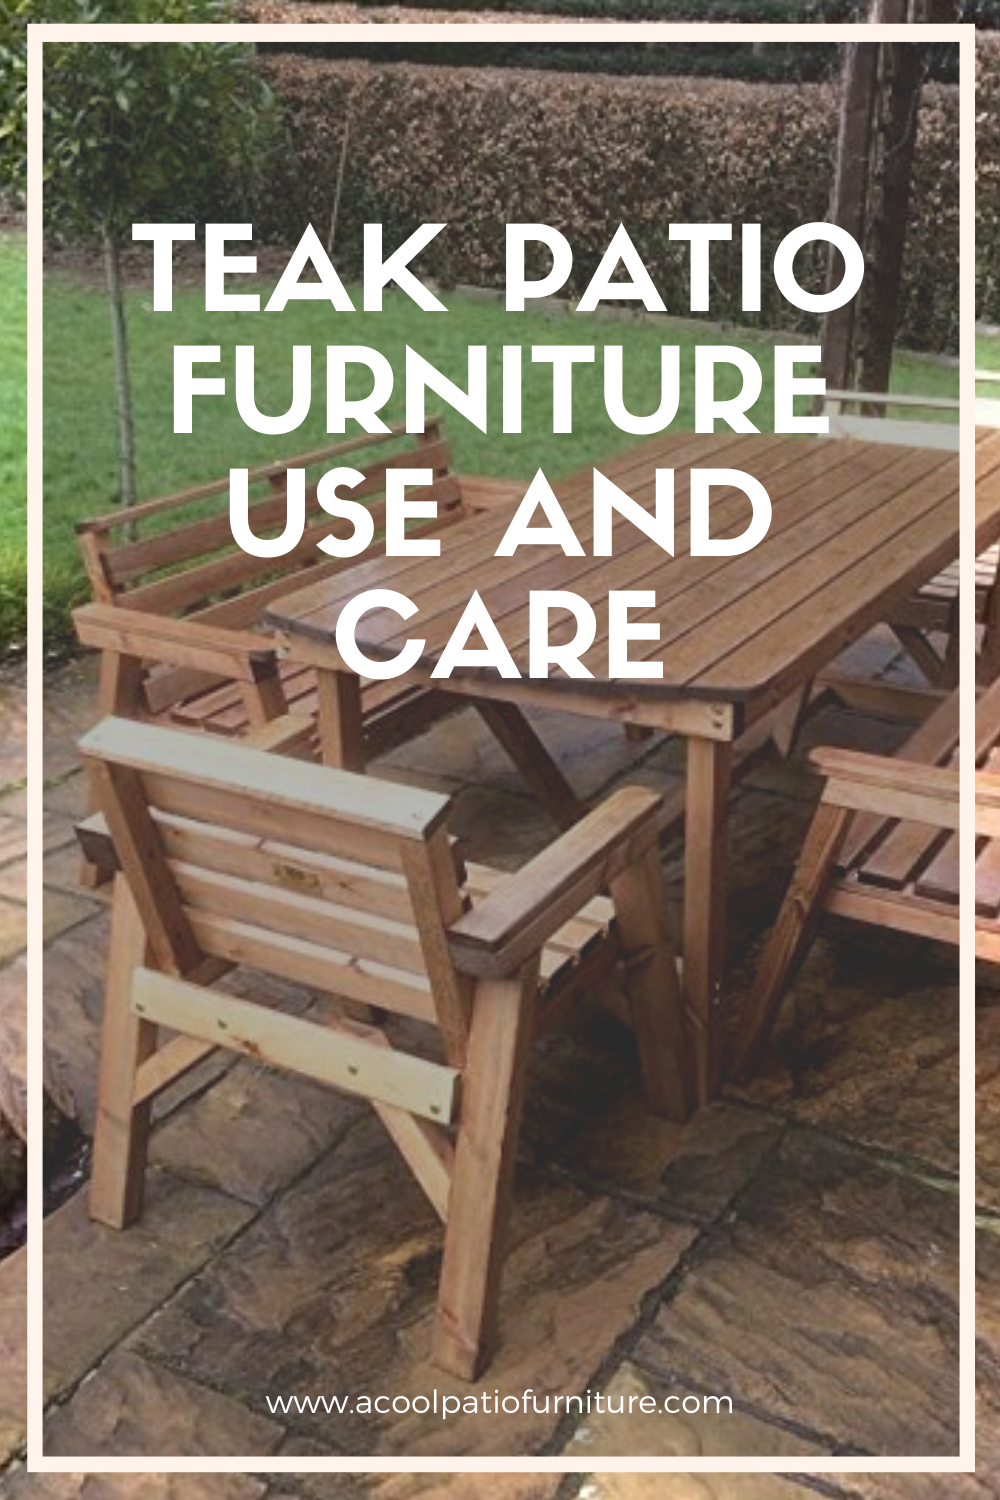 Teak Patio Furniture Use And Care This Wood Which Grows In Burma Indonesia And Other Exotic Locations Is Extremely Durable